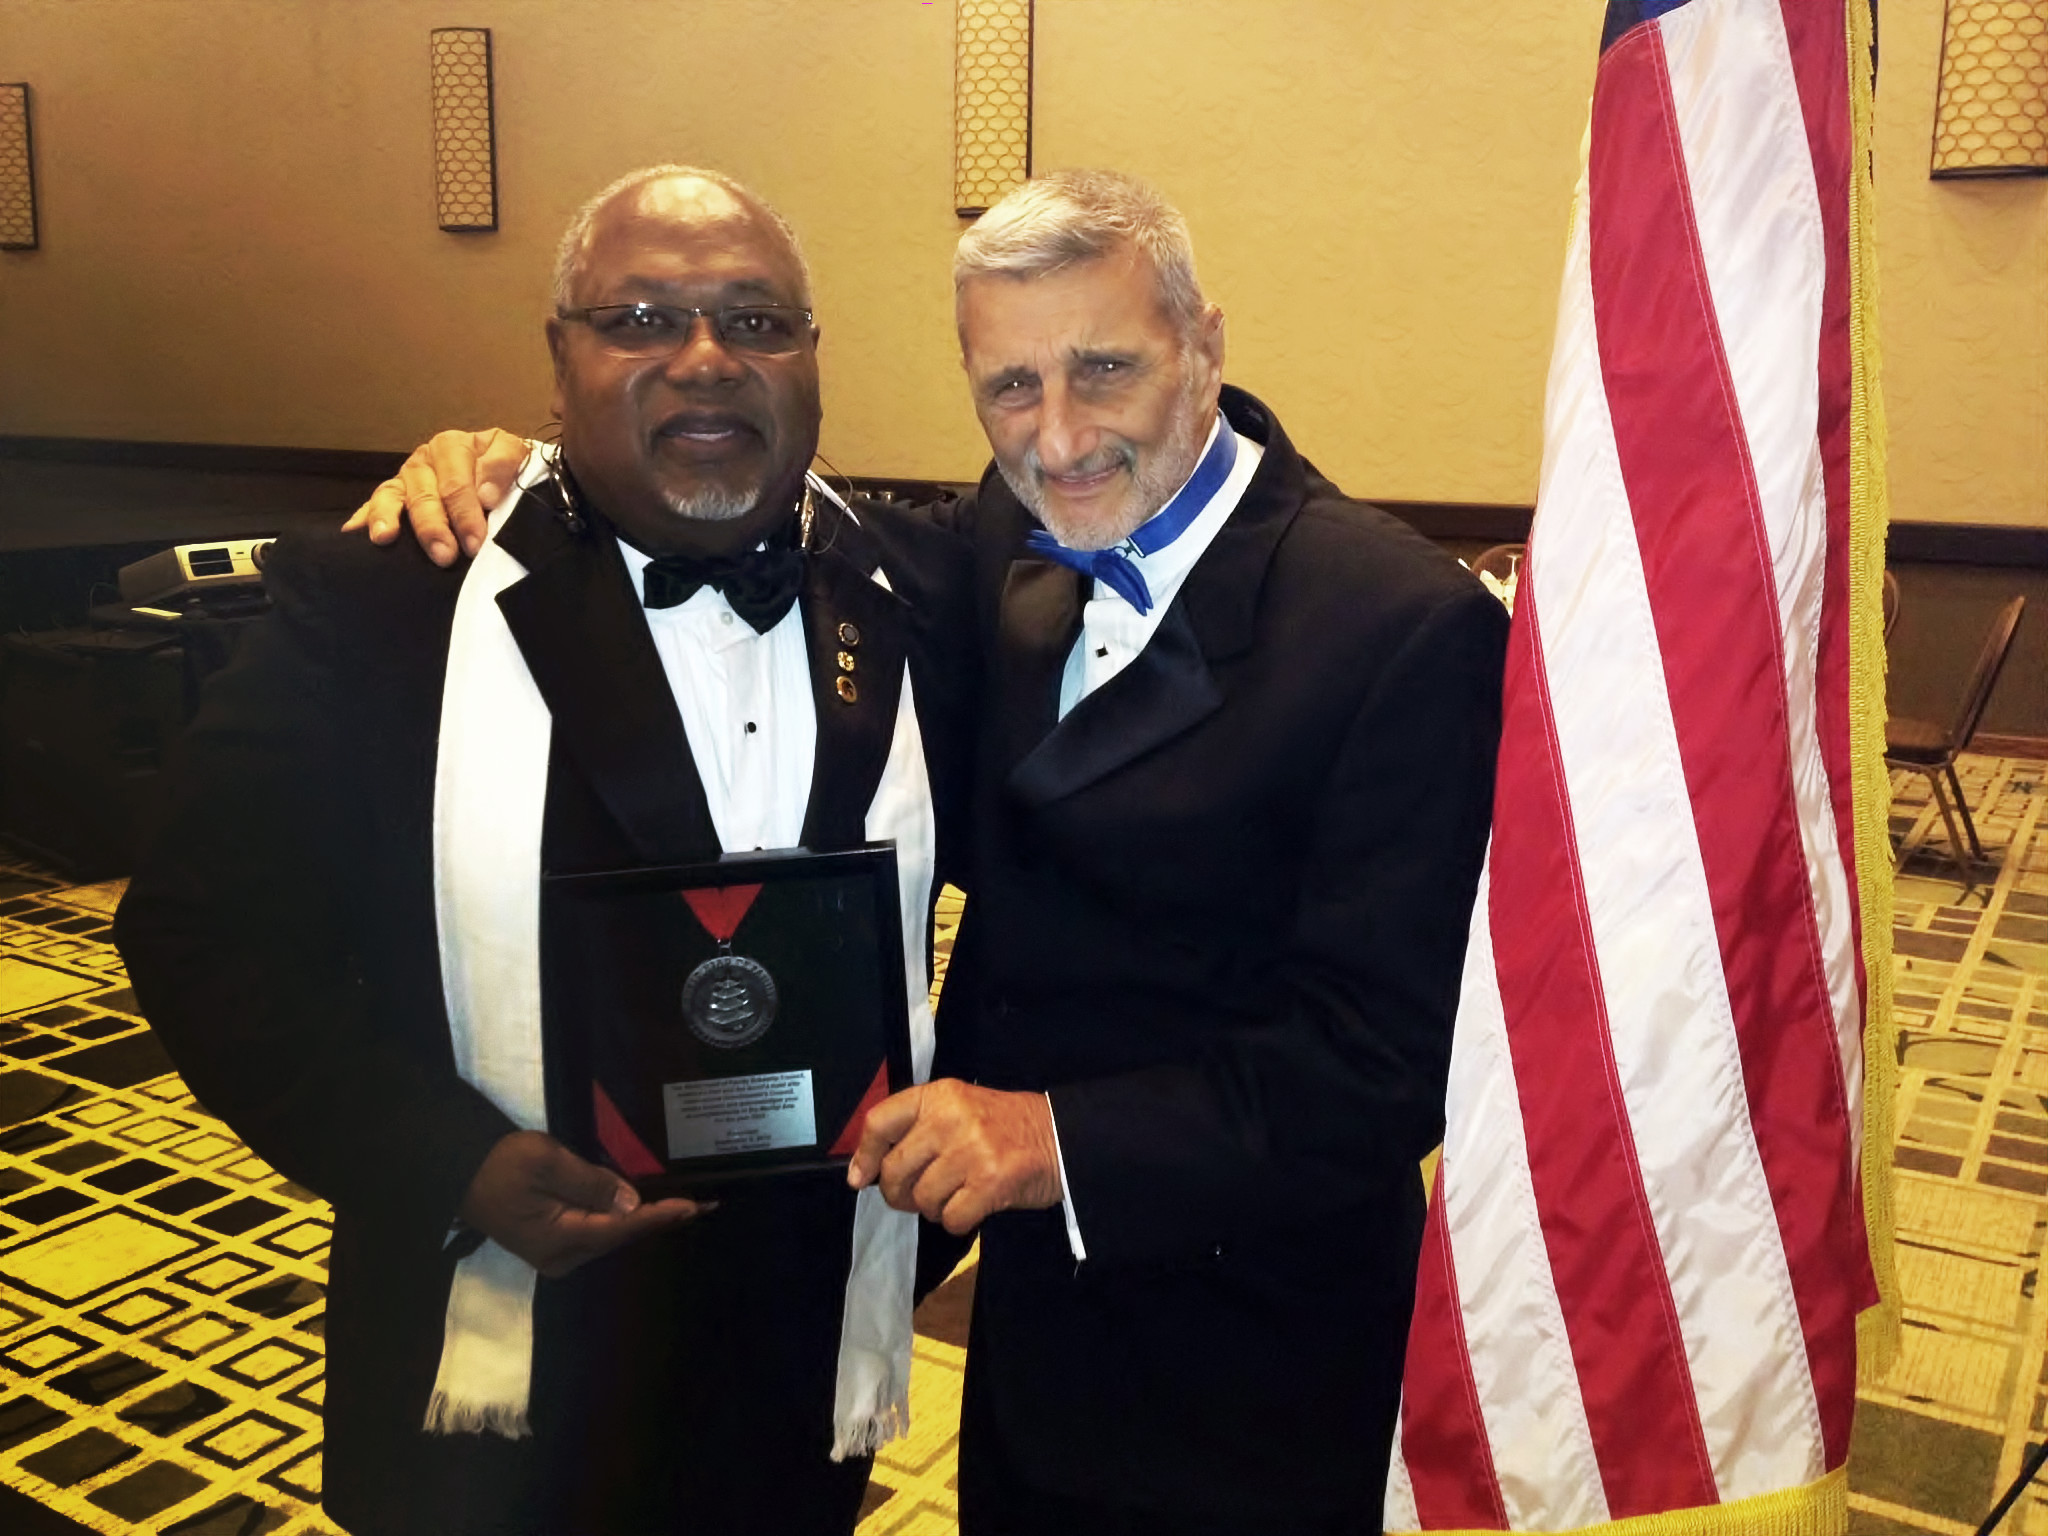 Grandmaster Gary Pointer and Grandmaster Vincent Marchetti